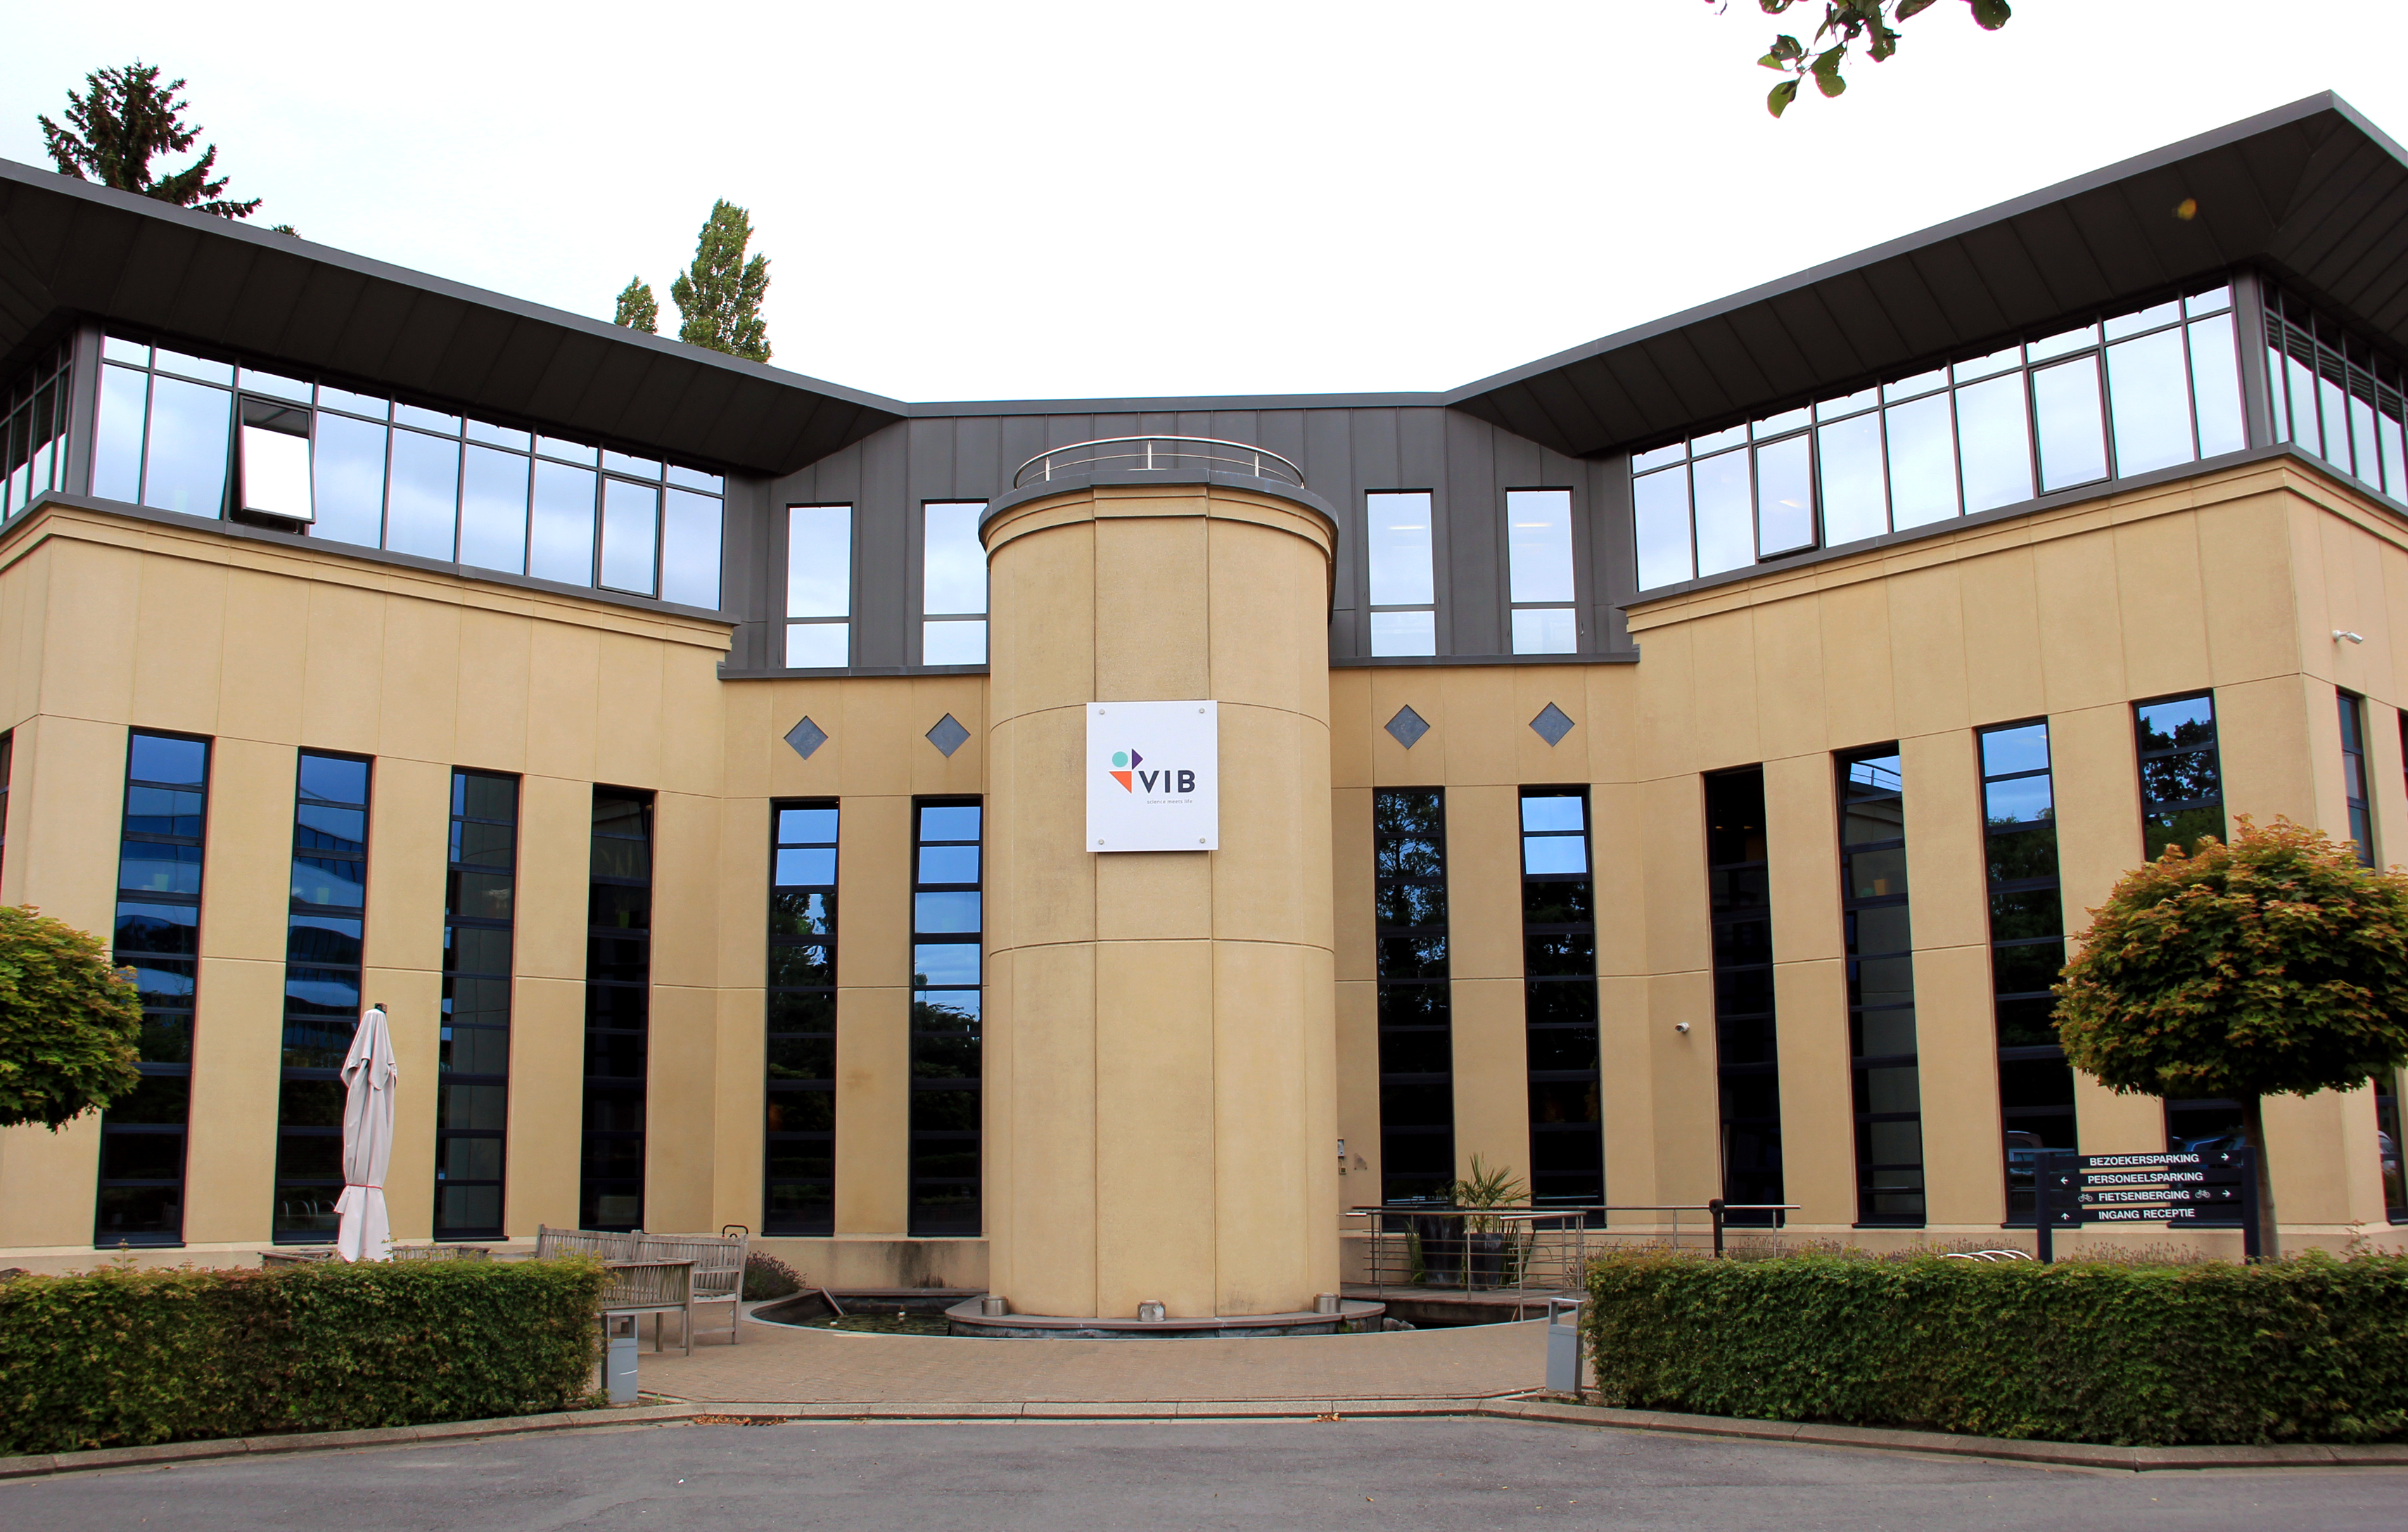 VIB Headquarters